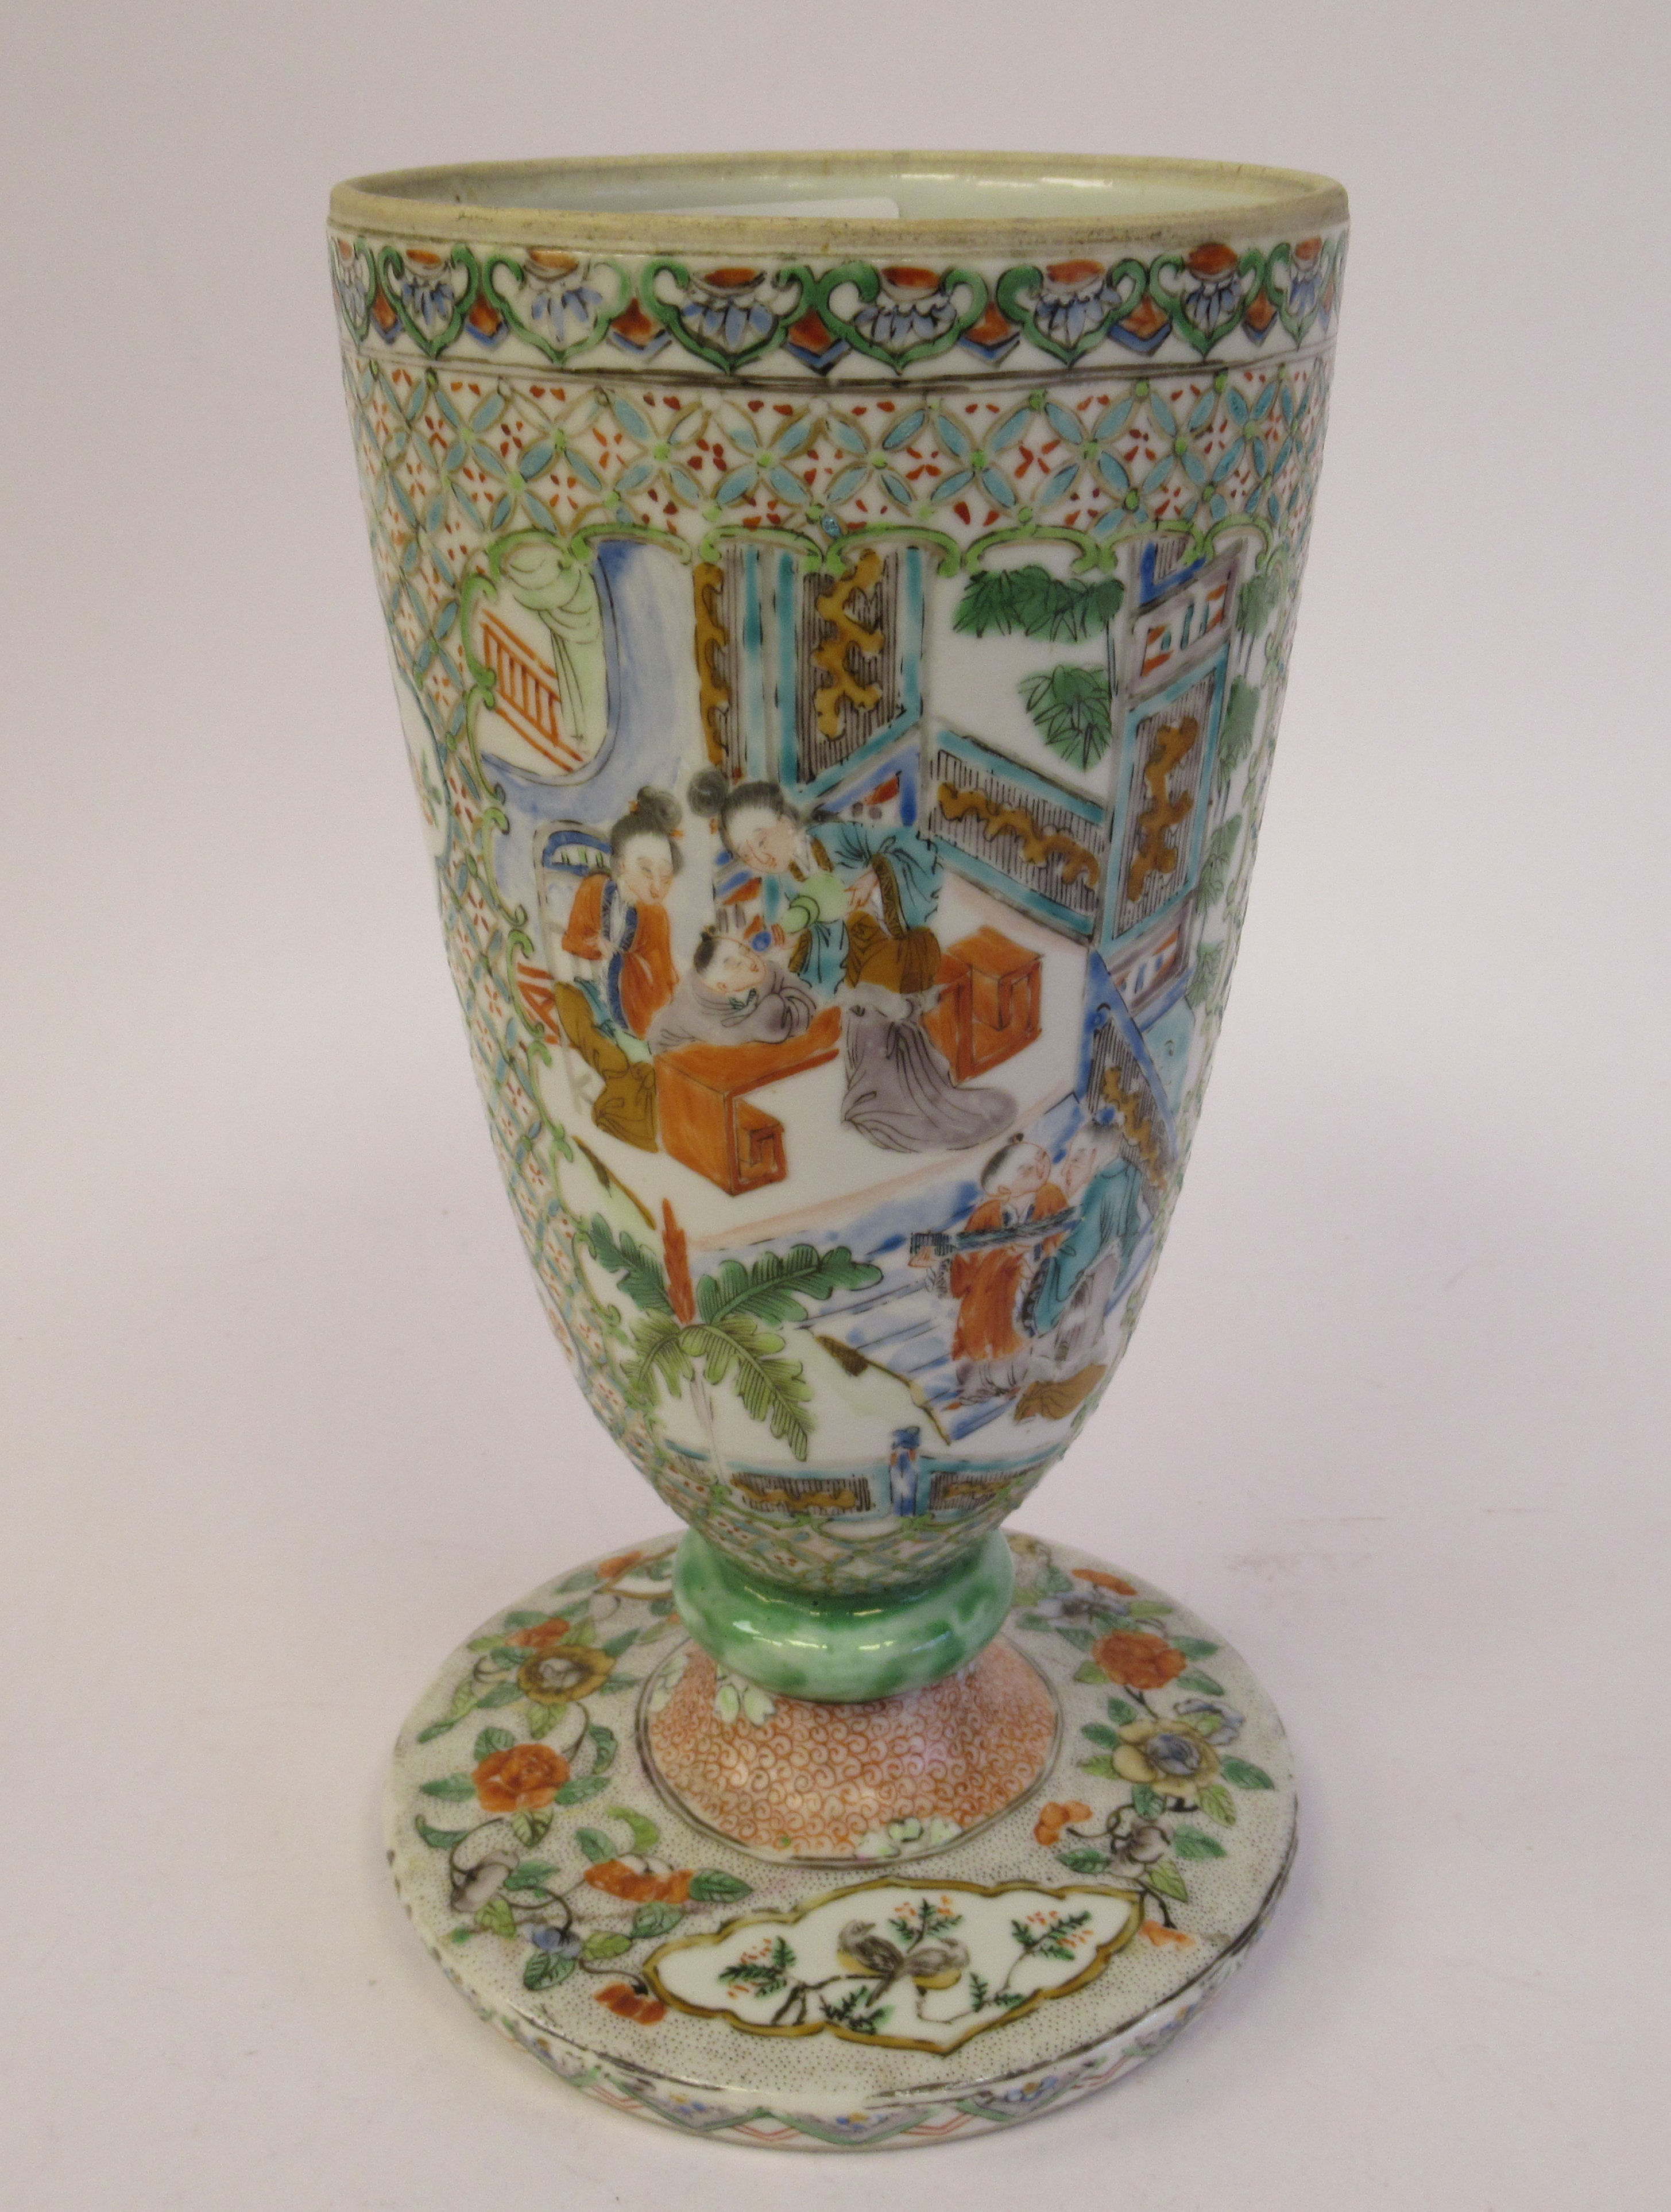 A late 19thC Chinese porcelain trumpet shaped vase, decorated with figures in relief, on a splayed